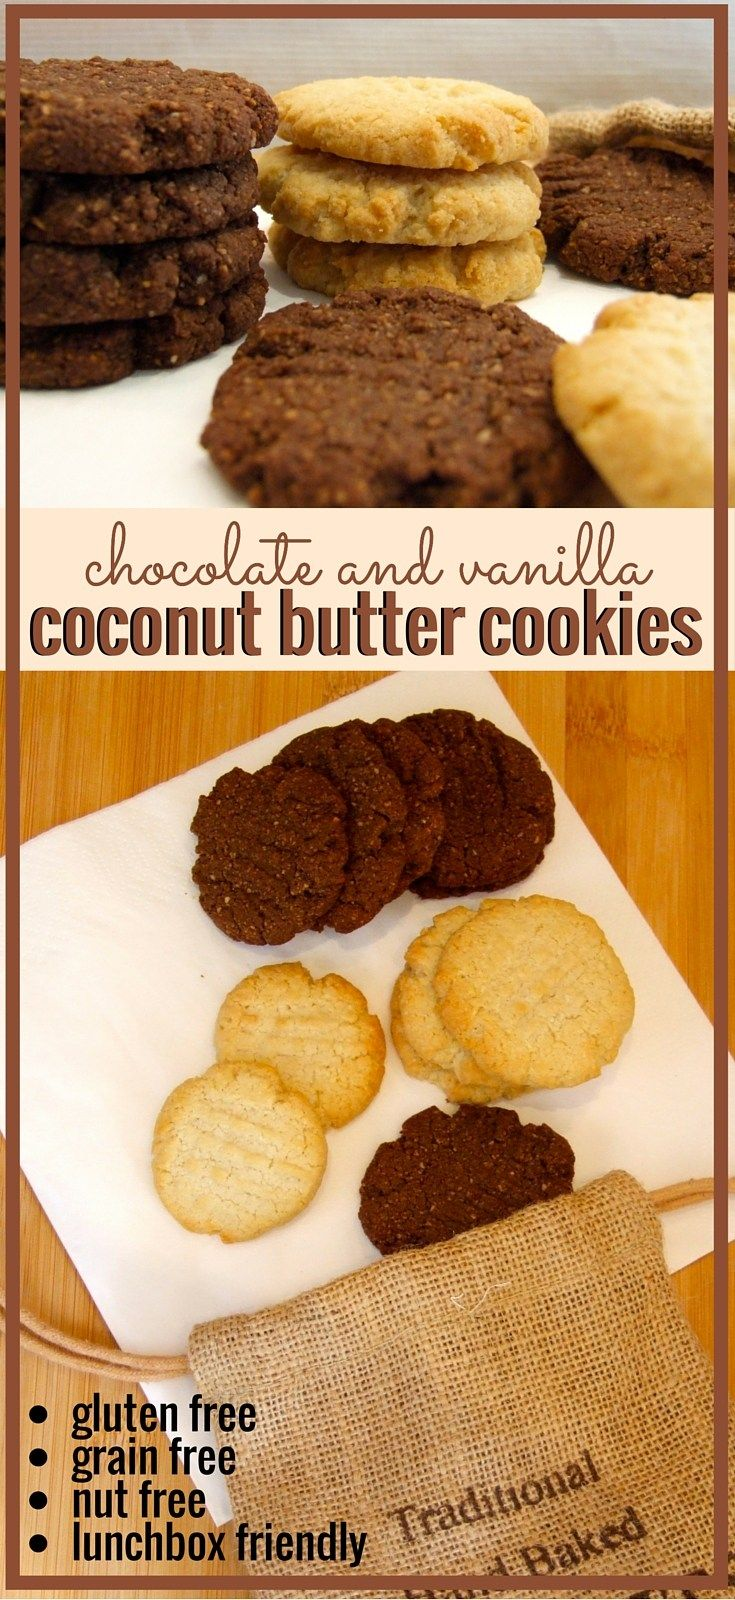 Moist and cakey, these delicious nut-free chocolate & vanilla cookies contain homemade coconut butter for a rich delicious flavour. Perfect for lunchboxes, & Passover friendly!